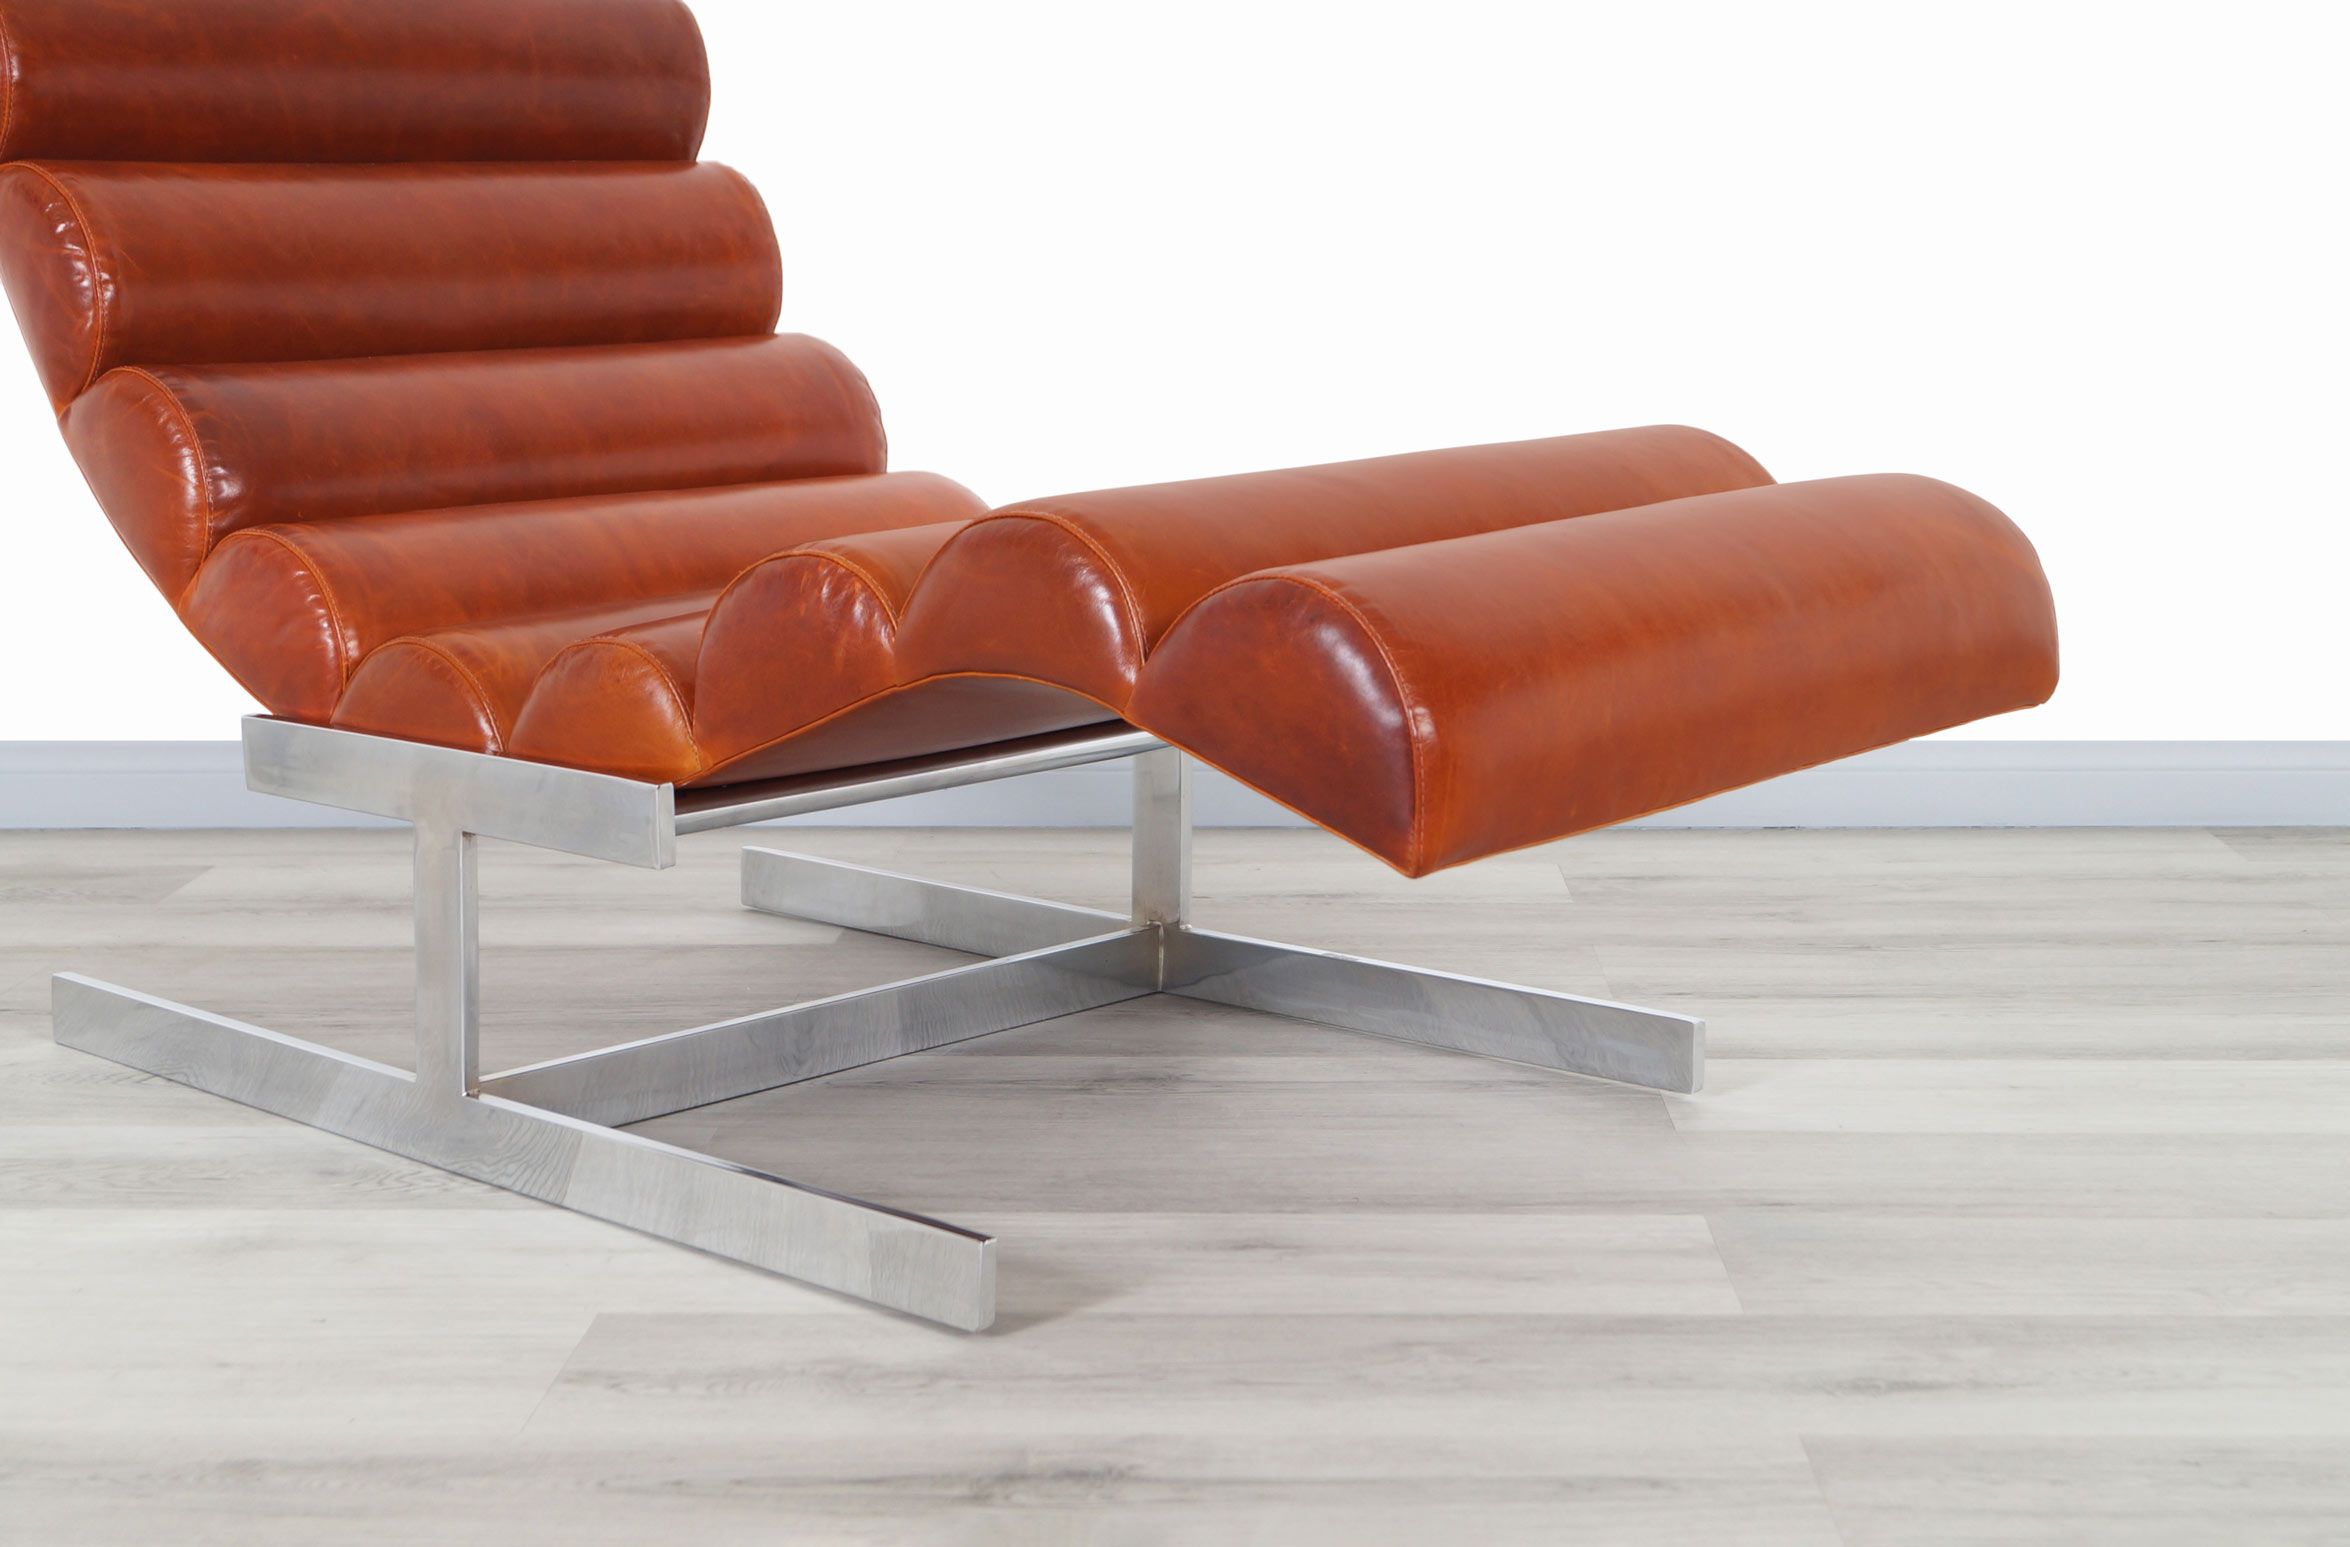 Vintage Chrome and Leather Wave Chaise Lounge Attributed to Milo Baughman